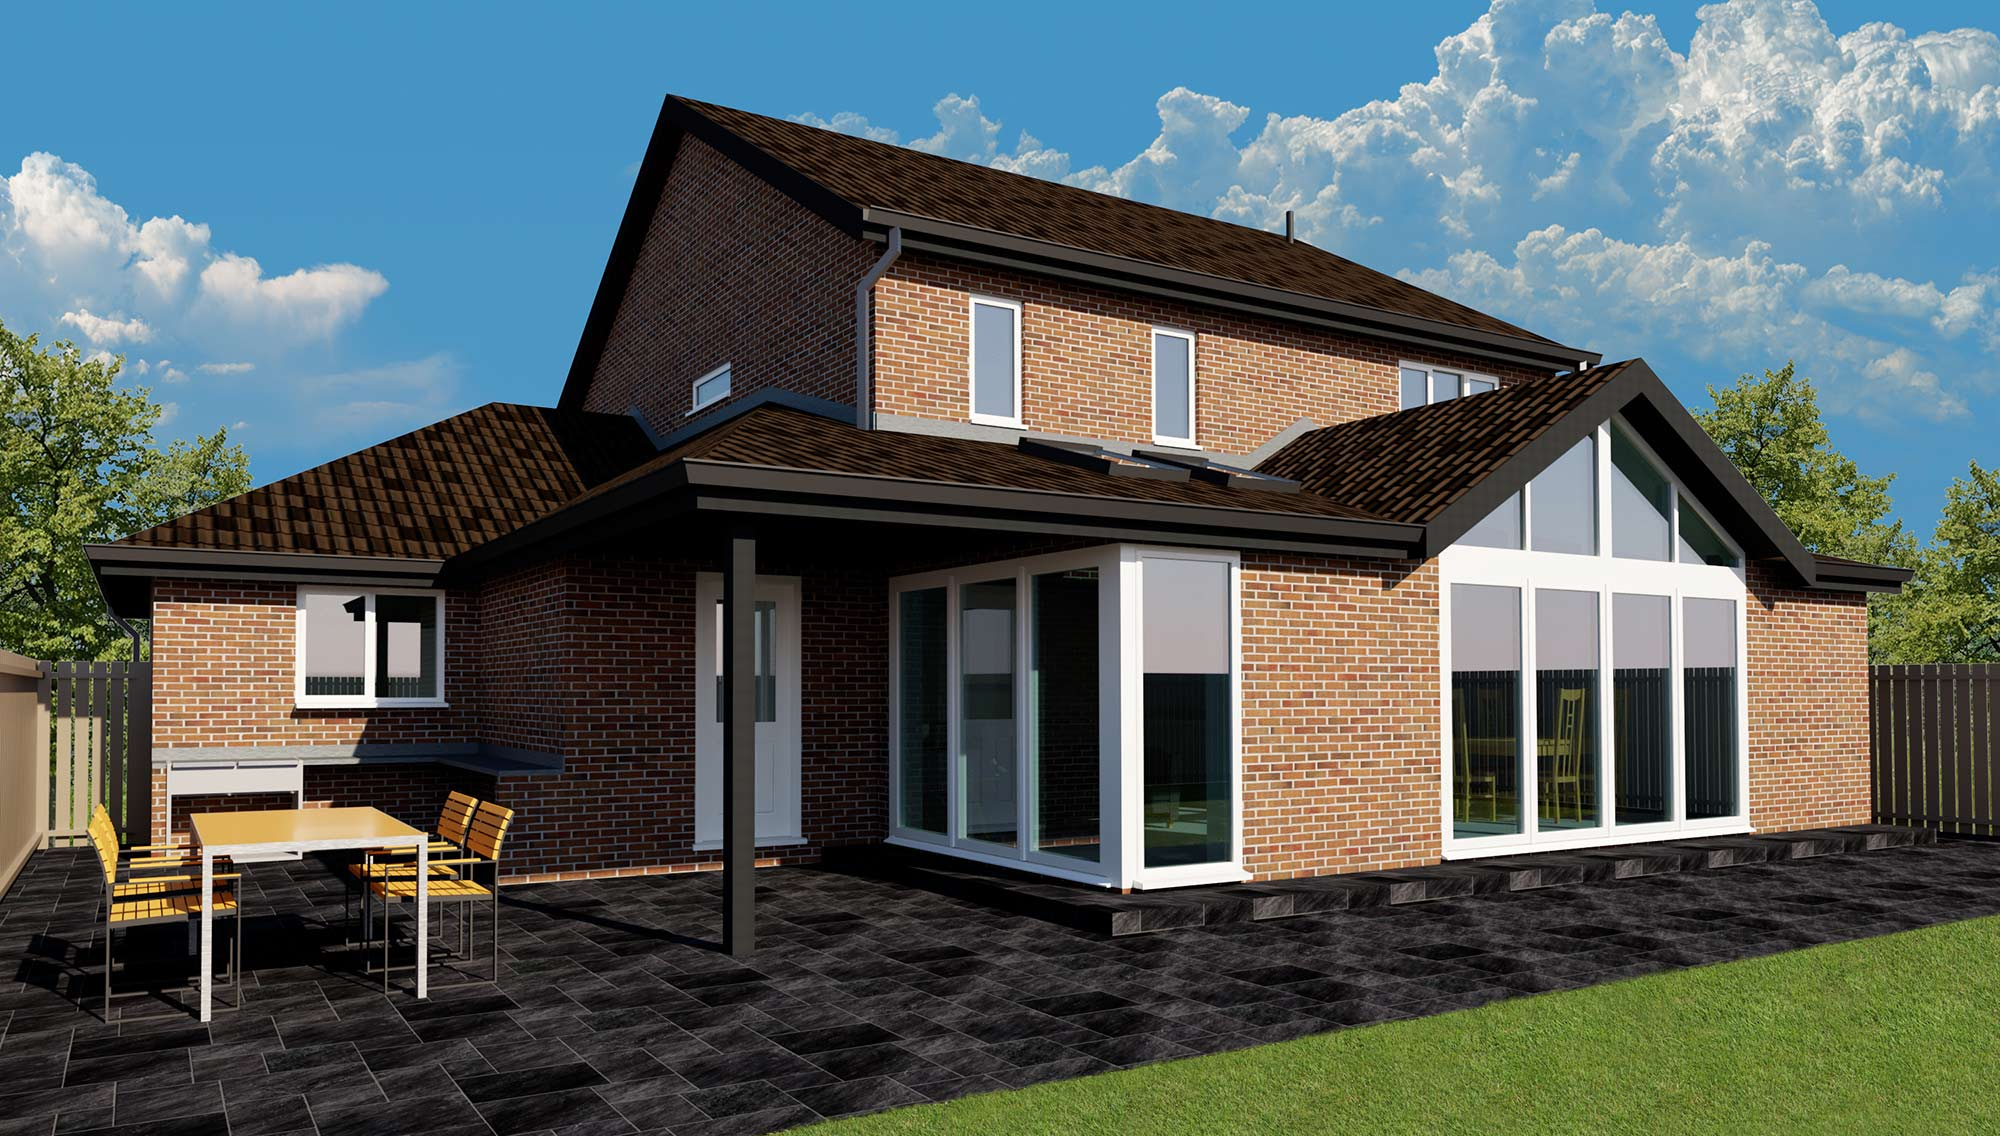 Gosforth Extension bifold doors large window kitchen diner Acre Design Newcastle